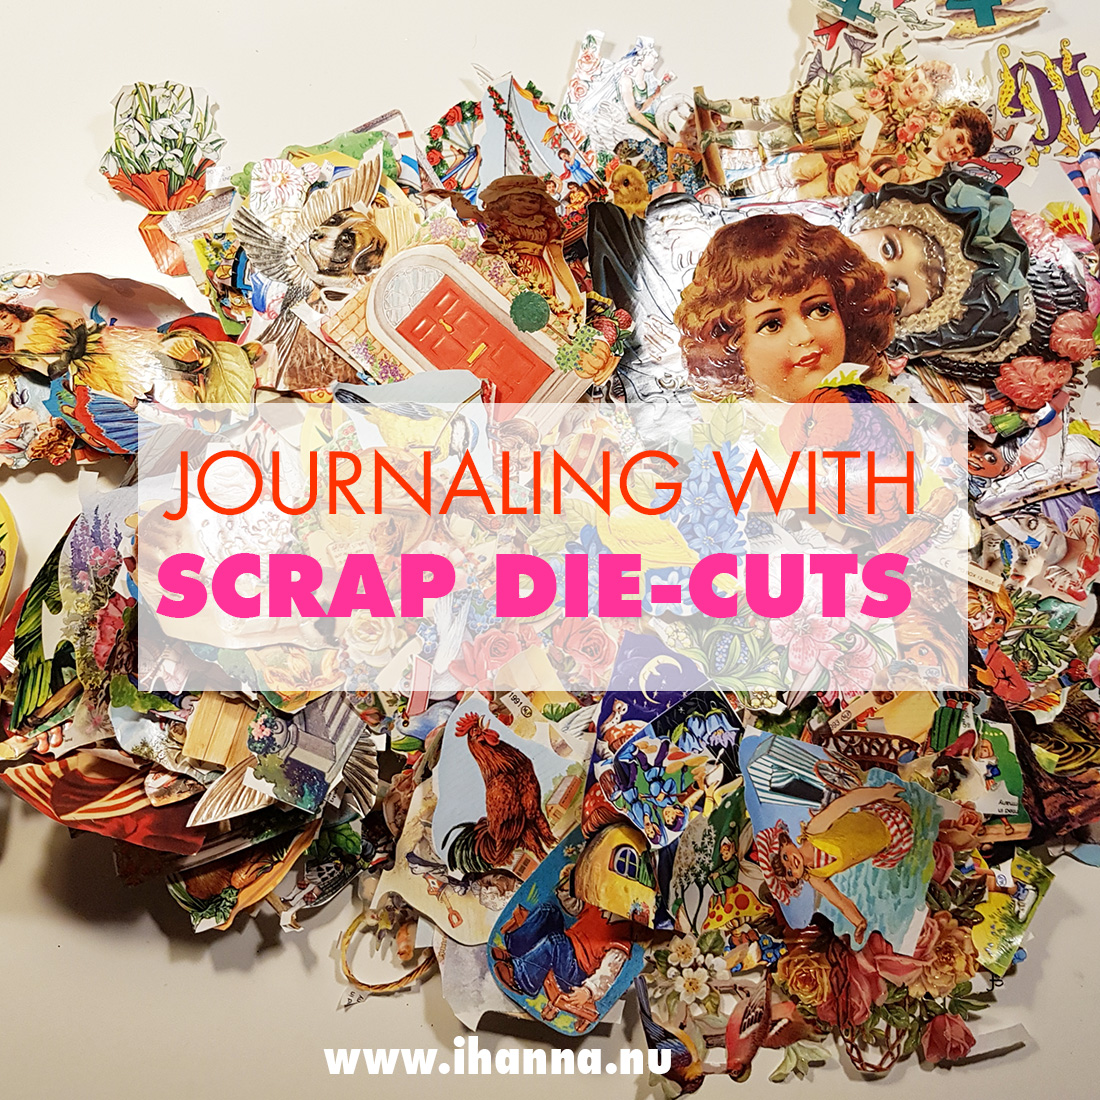 Journaling with Scrap Die-Cut images / Glanzbilder / Bokmärken #journaling